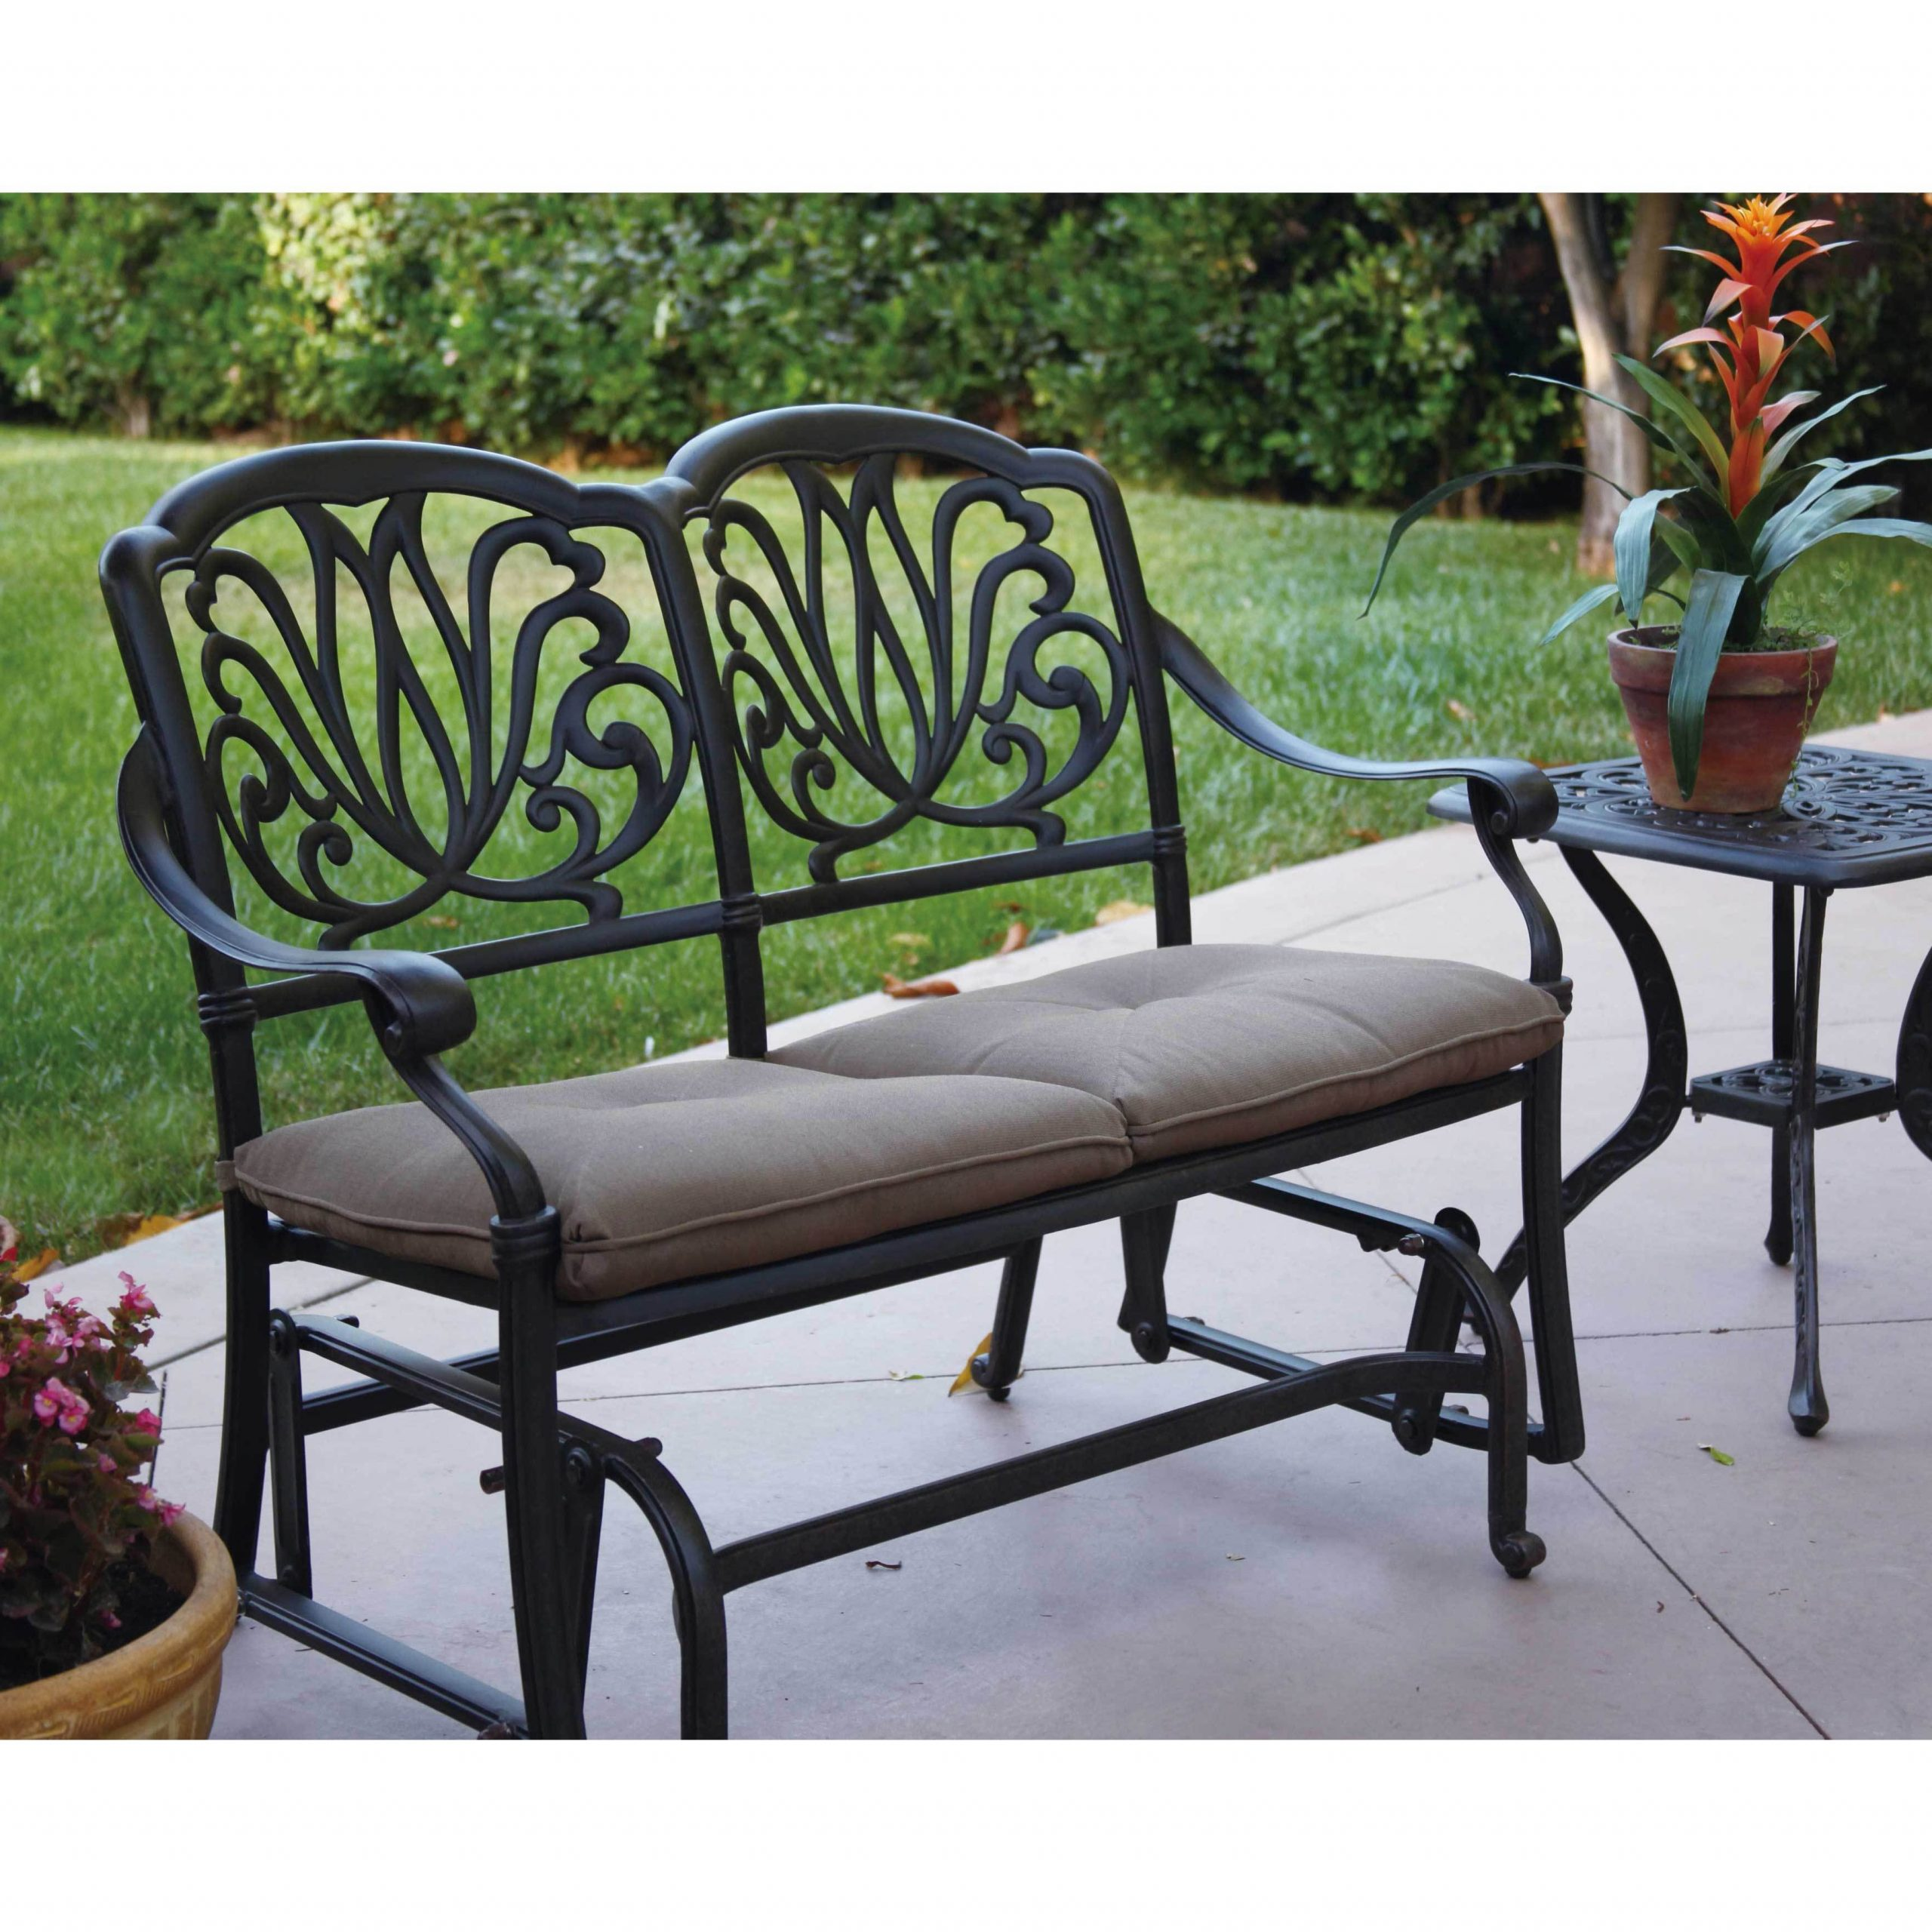 Havenside Home Avalon Cast Aluminum Glider Bench With Seat Cushion Intended For Most Recent Glider Benches With Cushions (View 16 of 30)